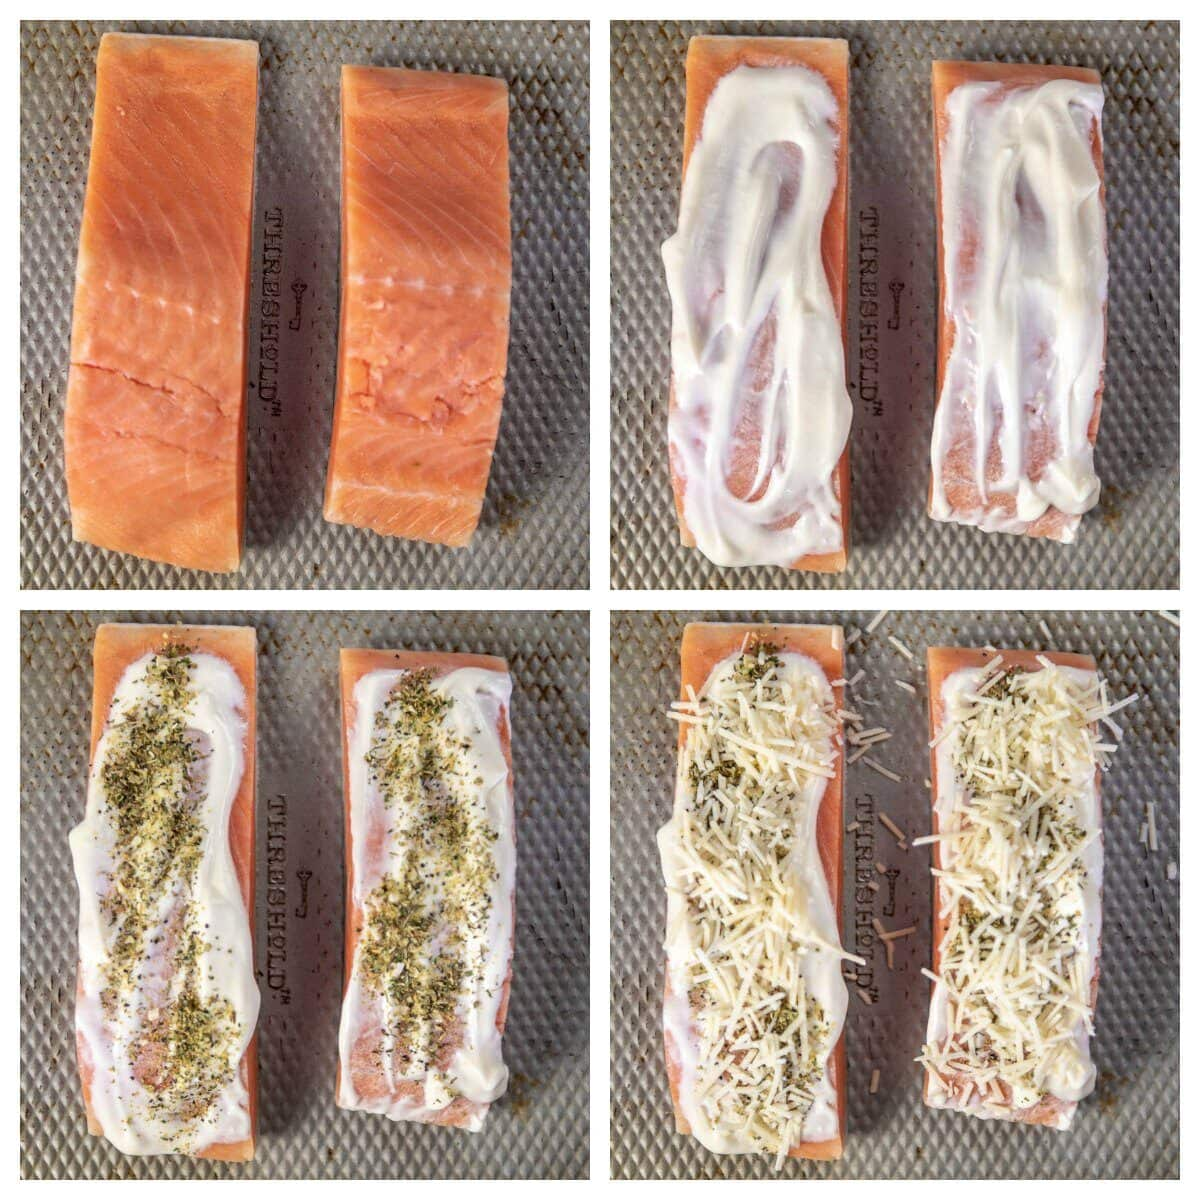 step by step preparing salmon with mayo, seasoning and cheese for air fryer